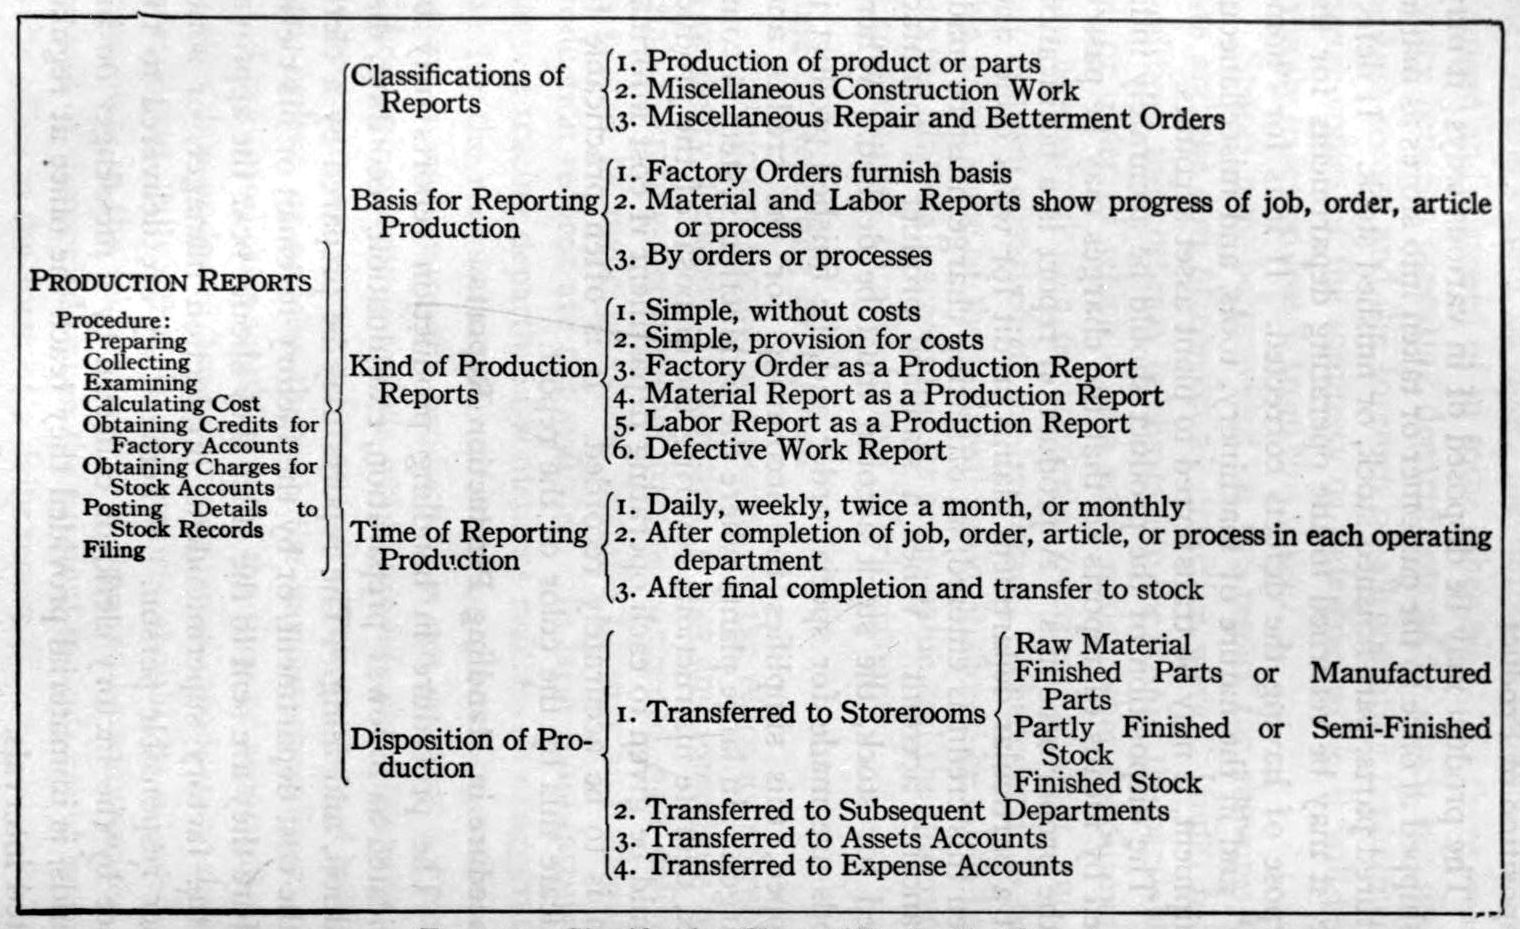 It Works Compensation Chart 2015: Classification Chart of Production Reports 1919.jpg ,Chart